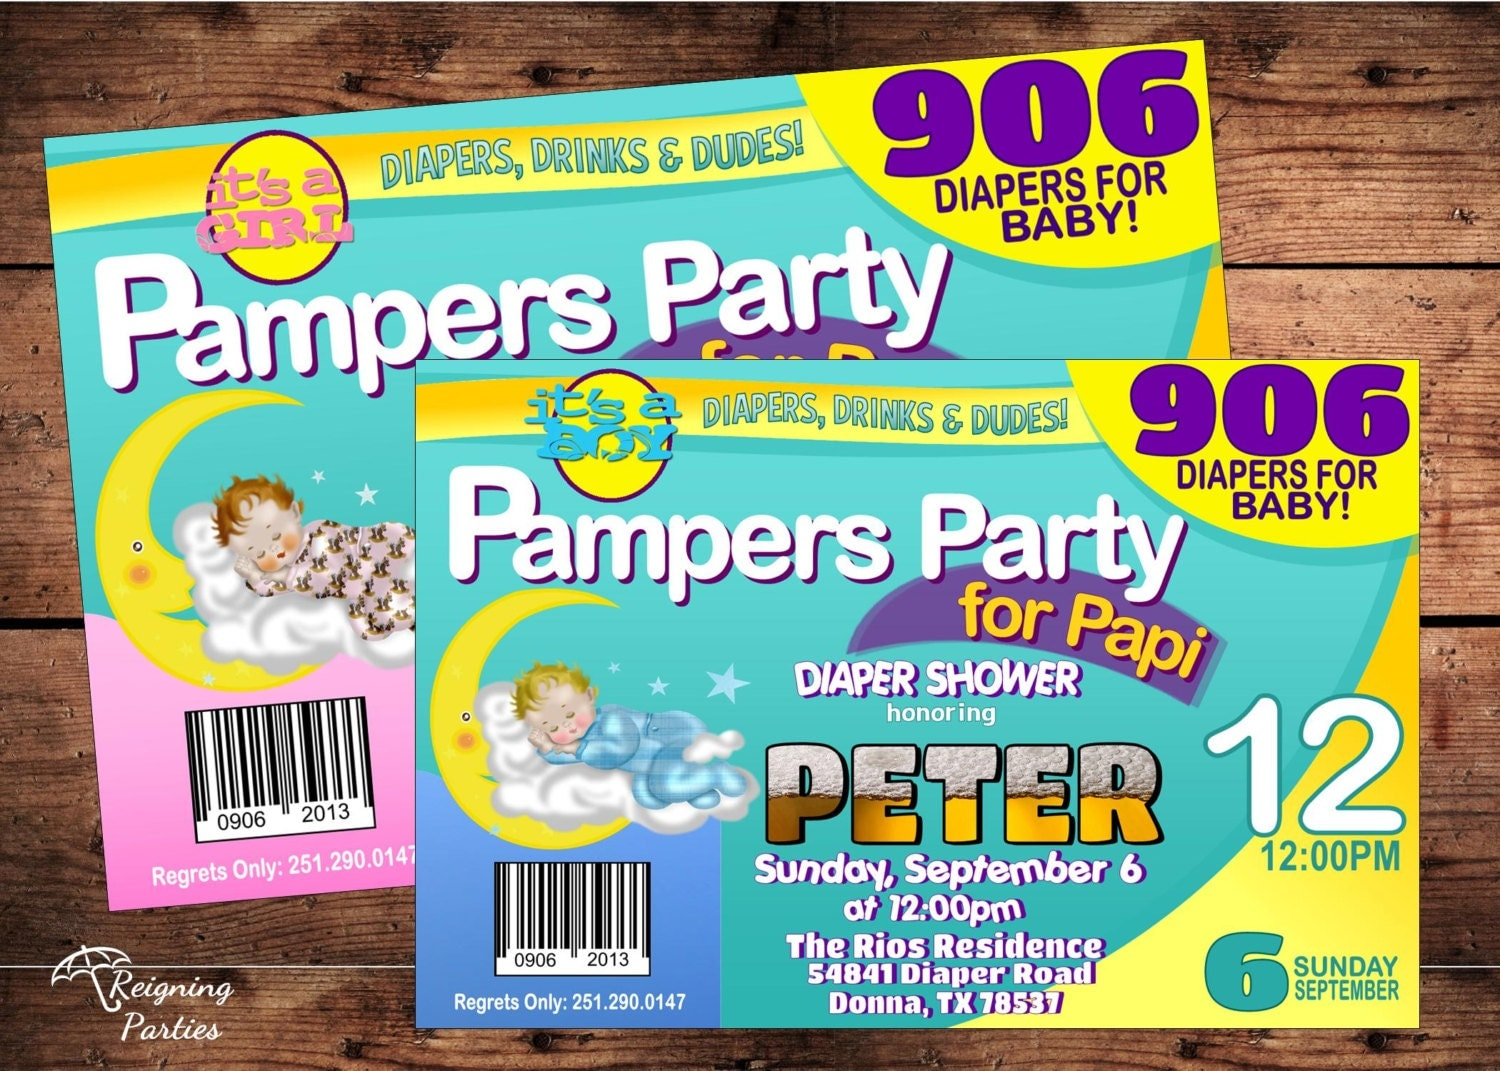 Beer and diaper party invitations gangcraft diaper shower for dad invitation babies beer invitation party invitations filmwisefo